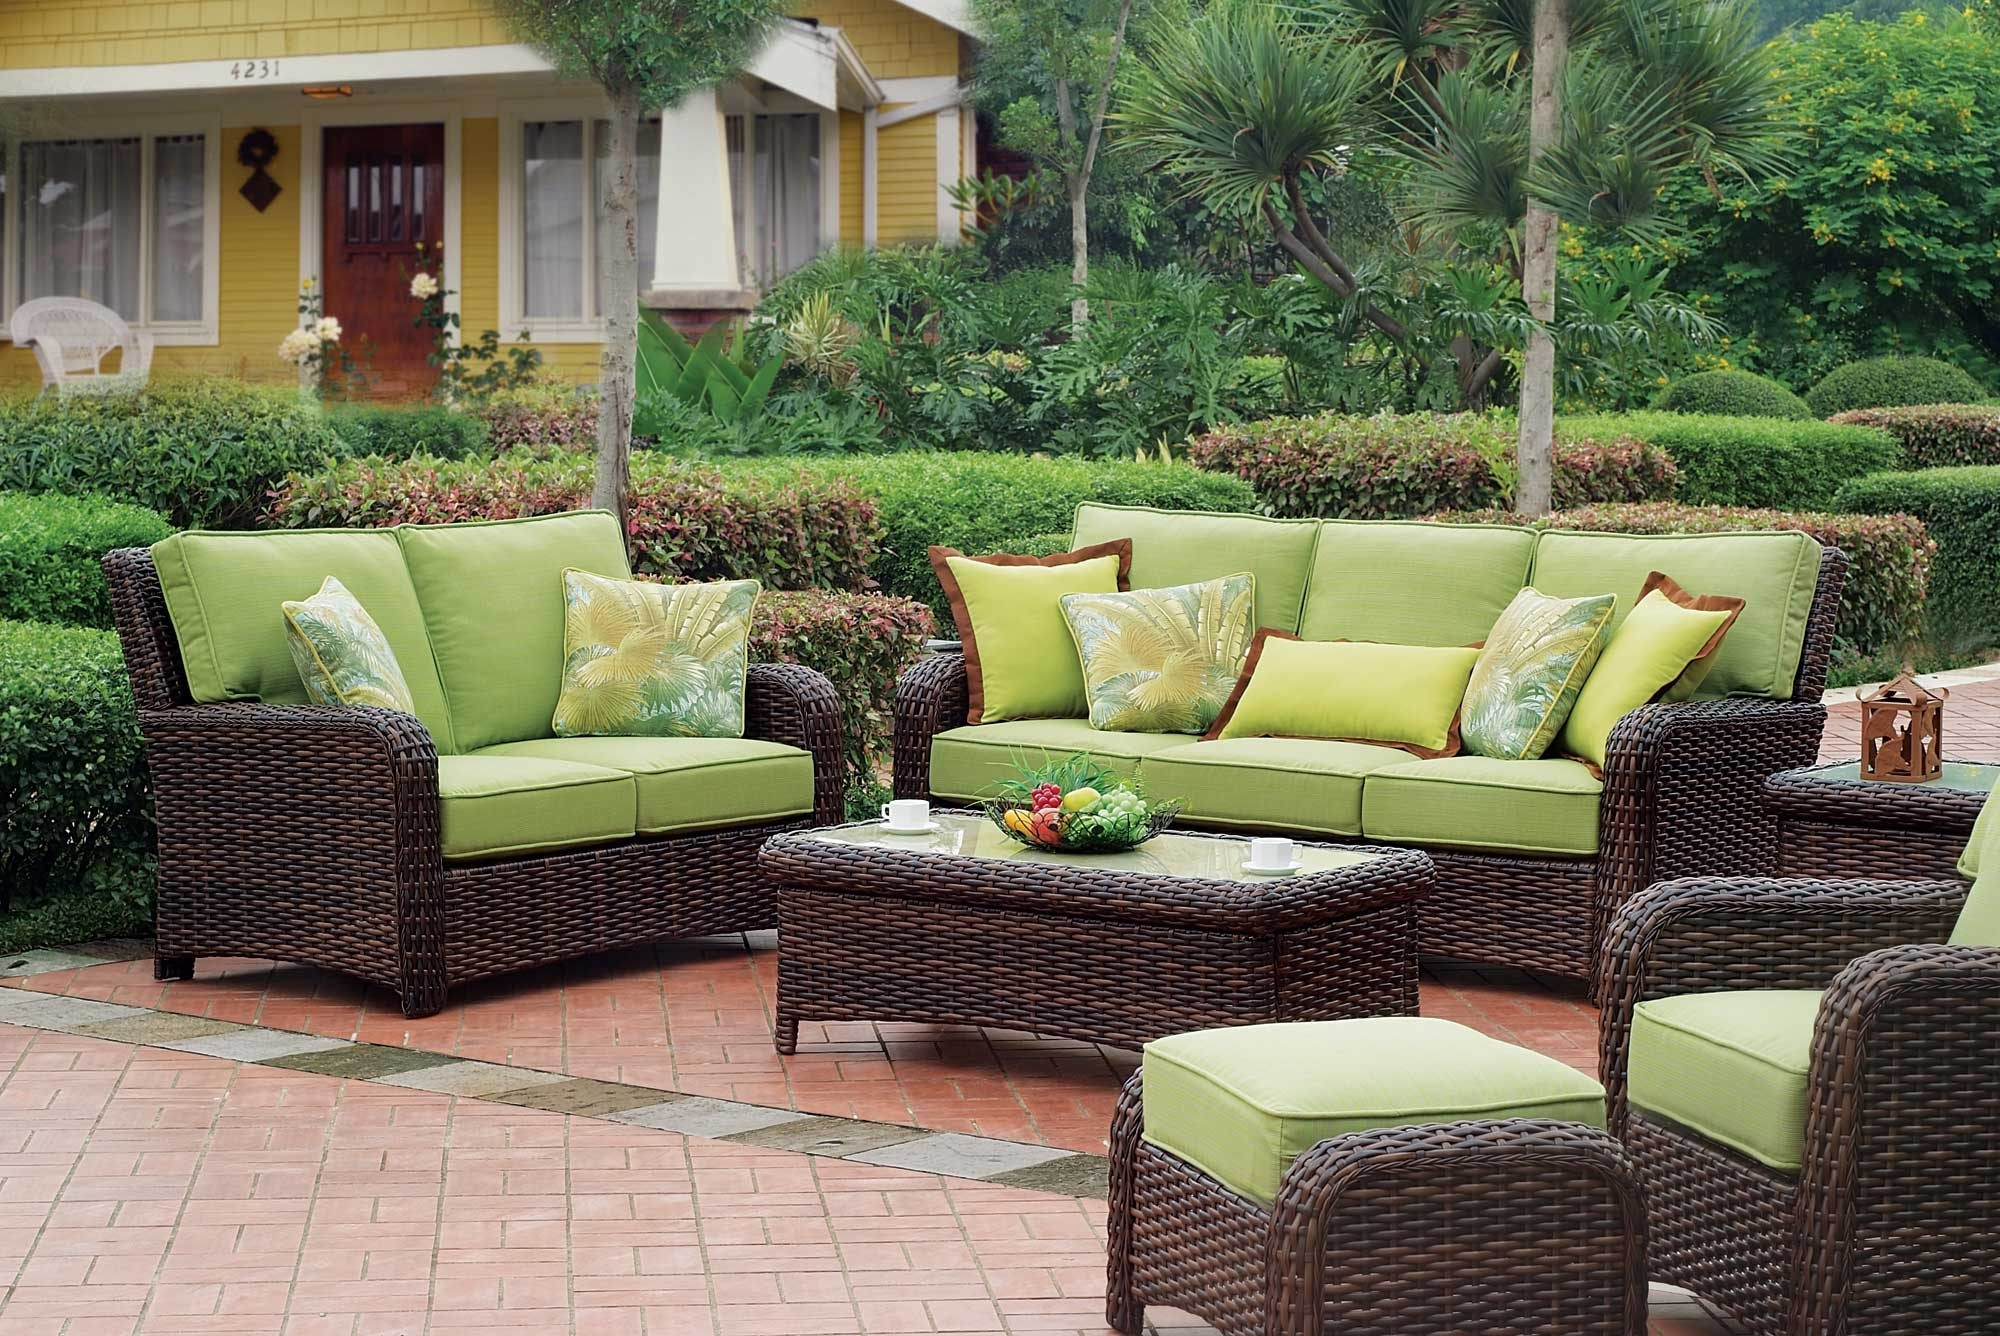 Image of: Cool Resin Wicker Patio Furniture For All Weather Hgnv In Outdoor Wicker Furniture Cushions Warmth Outdoor Wicker Furniture Cushions